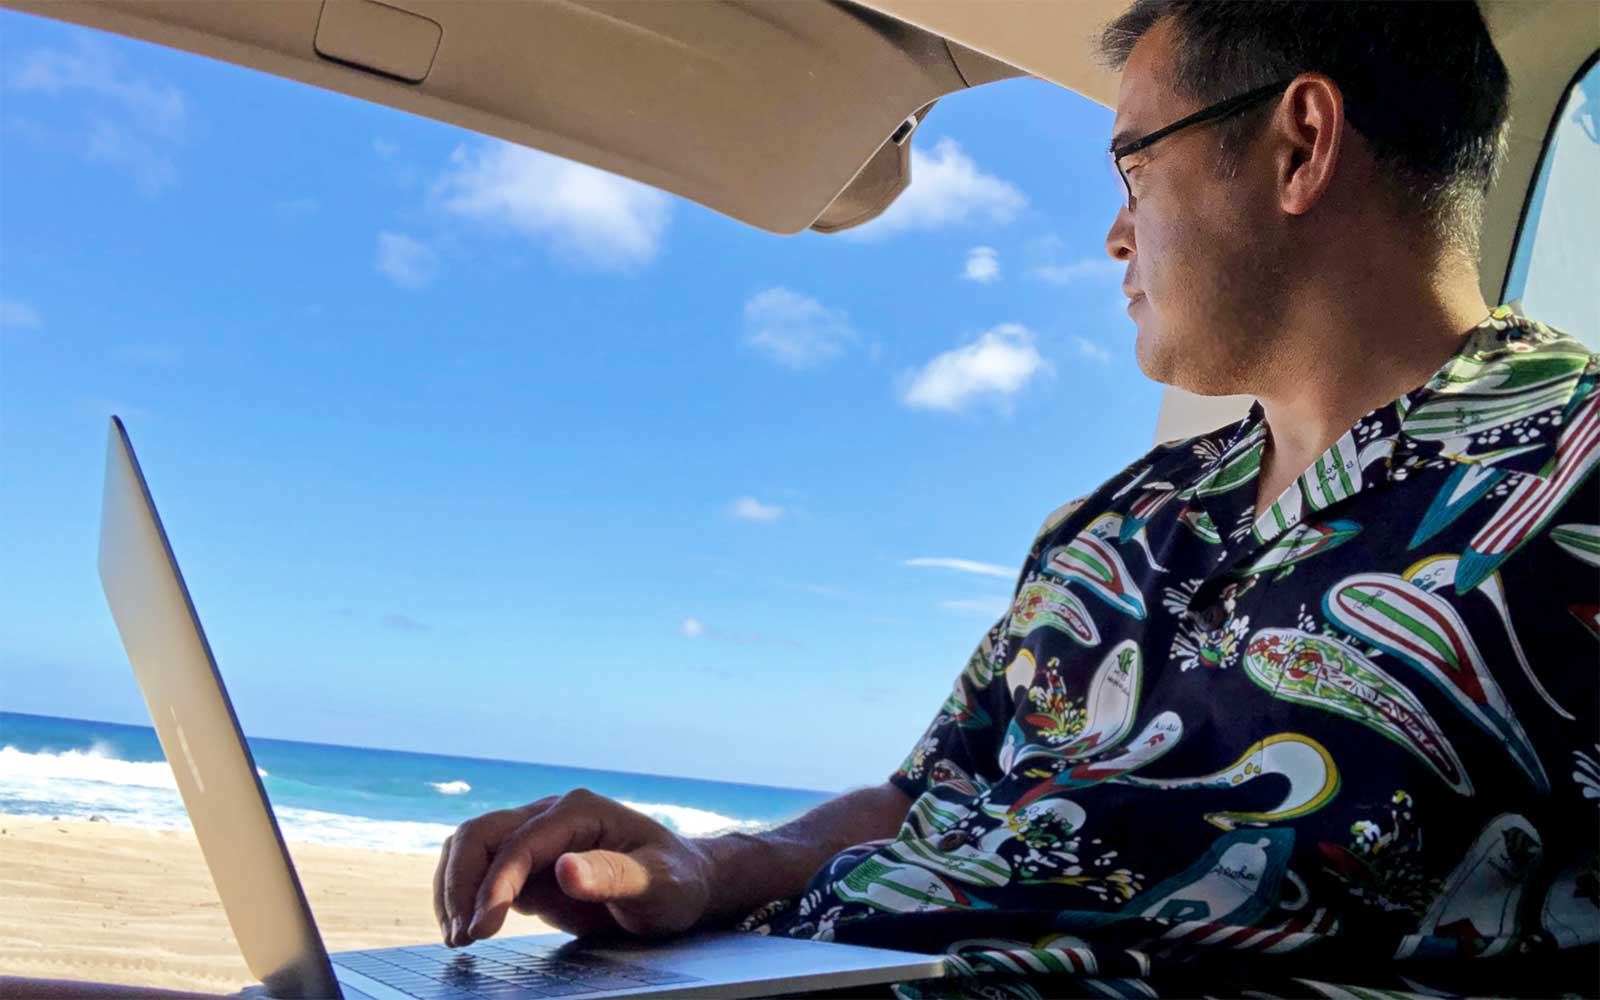 wearing a retro Hawaiian shirt while working out of the back of an SUV on the beach